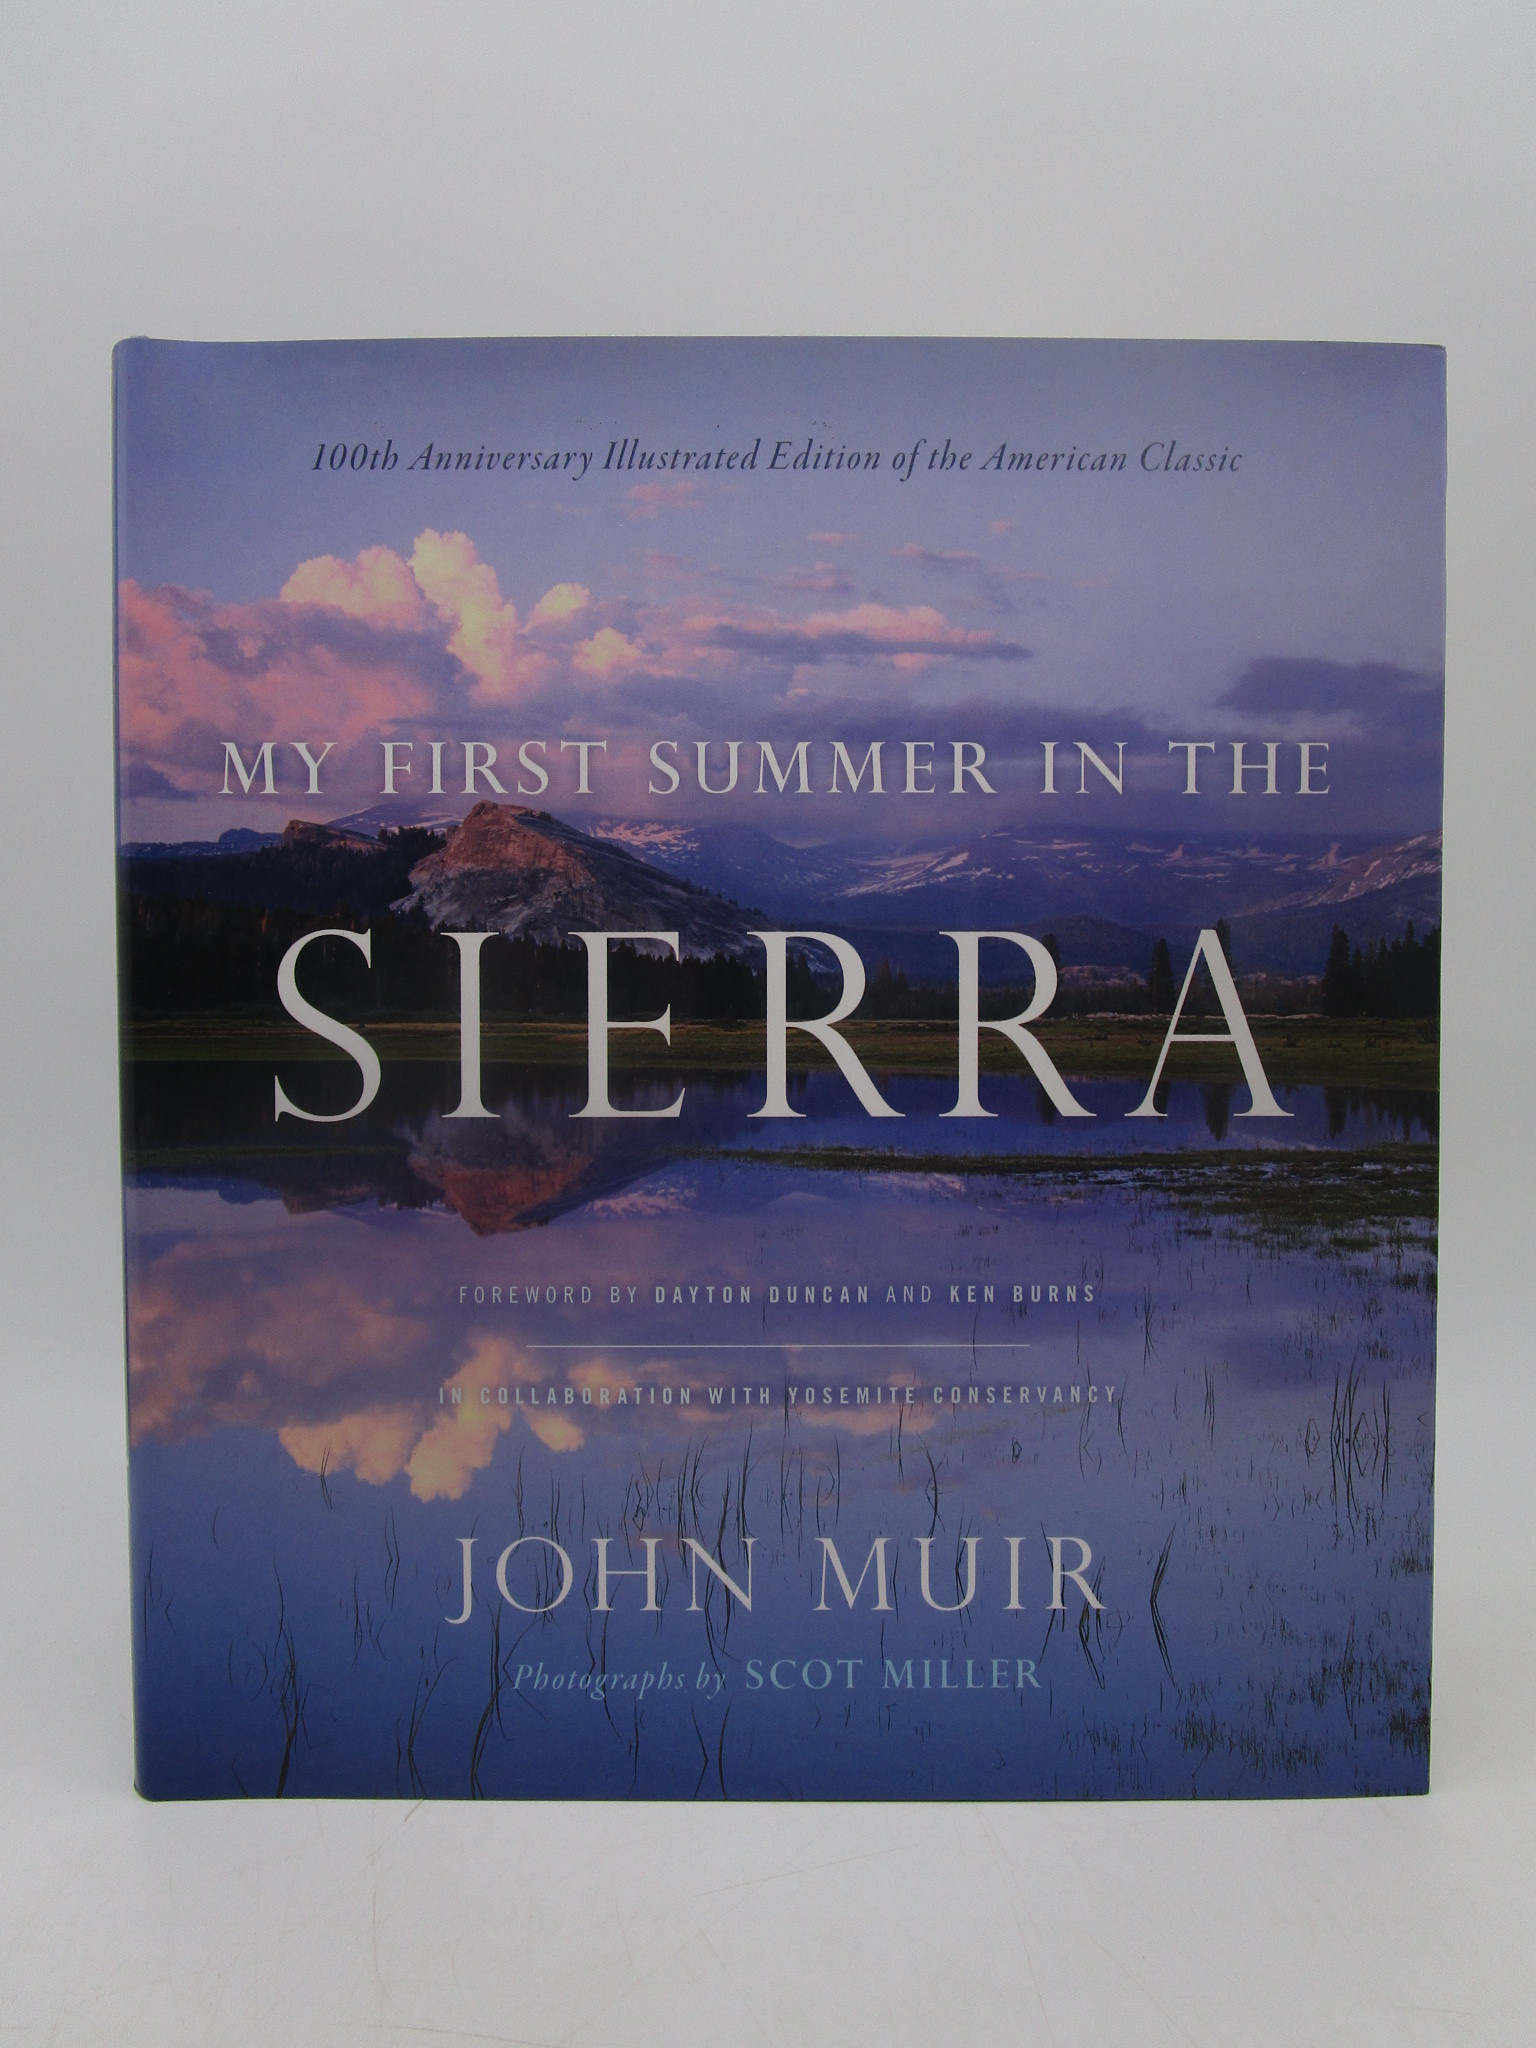 Image for My First Summer in the Sierra (The 100th Anniversary Illustrated Edition of the American Classic)